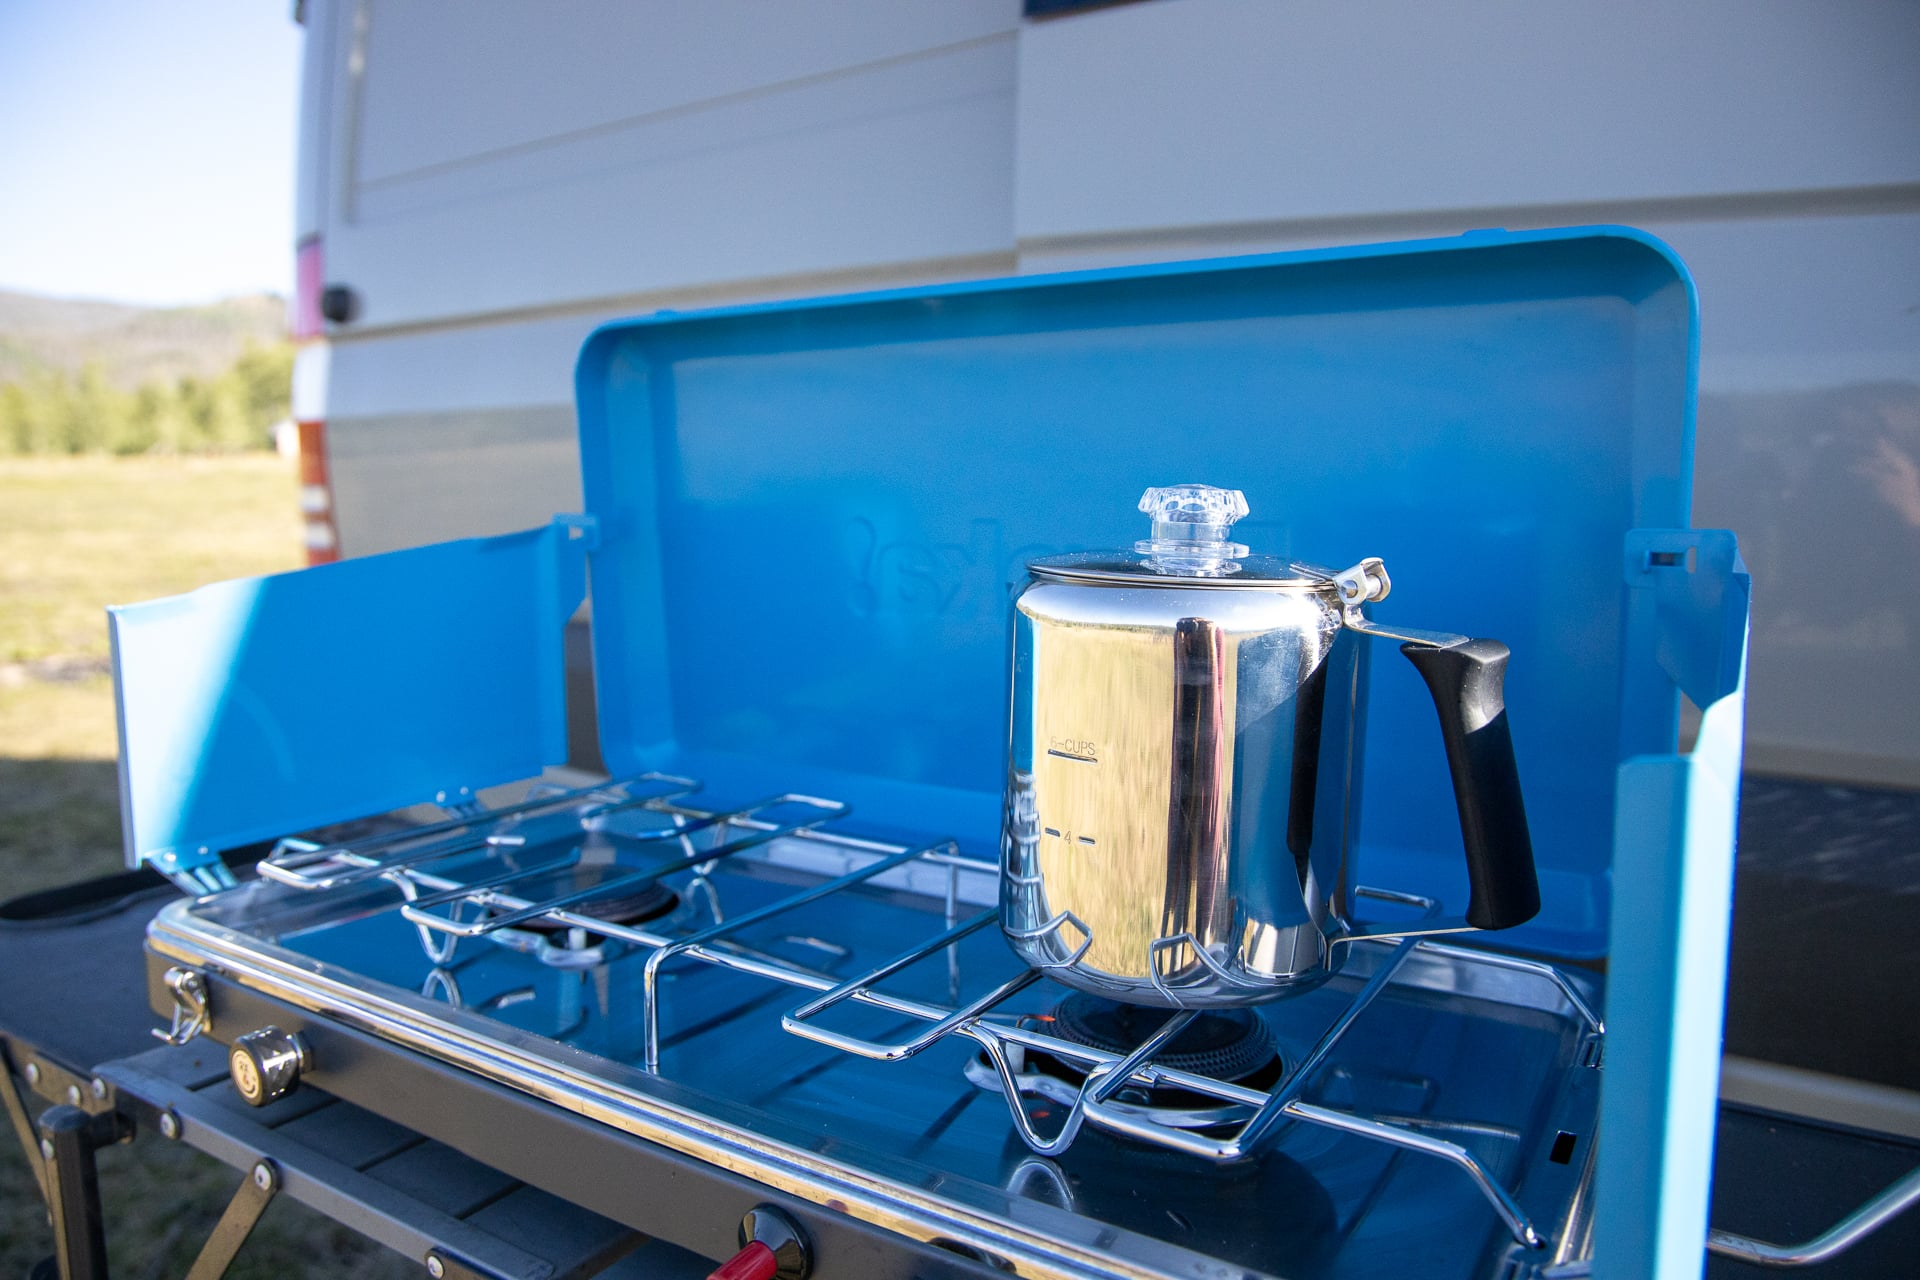 Stainless Steel Percolator by GSI Outdoors // Save money on the road by bringing your own camp cooking gear. Here is our checklist for the best outdoor camp kitchen cooking essentials.